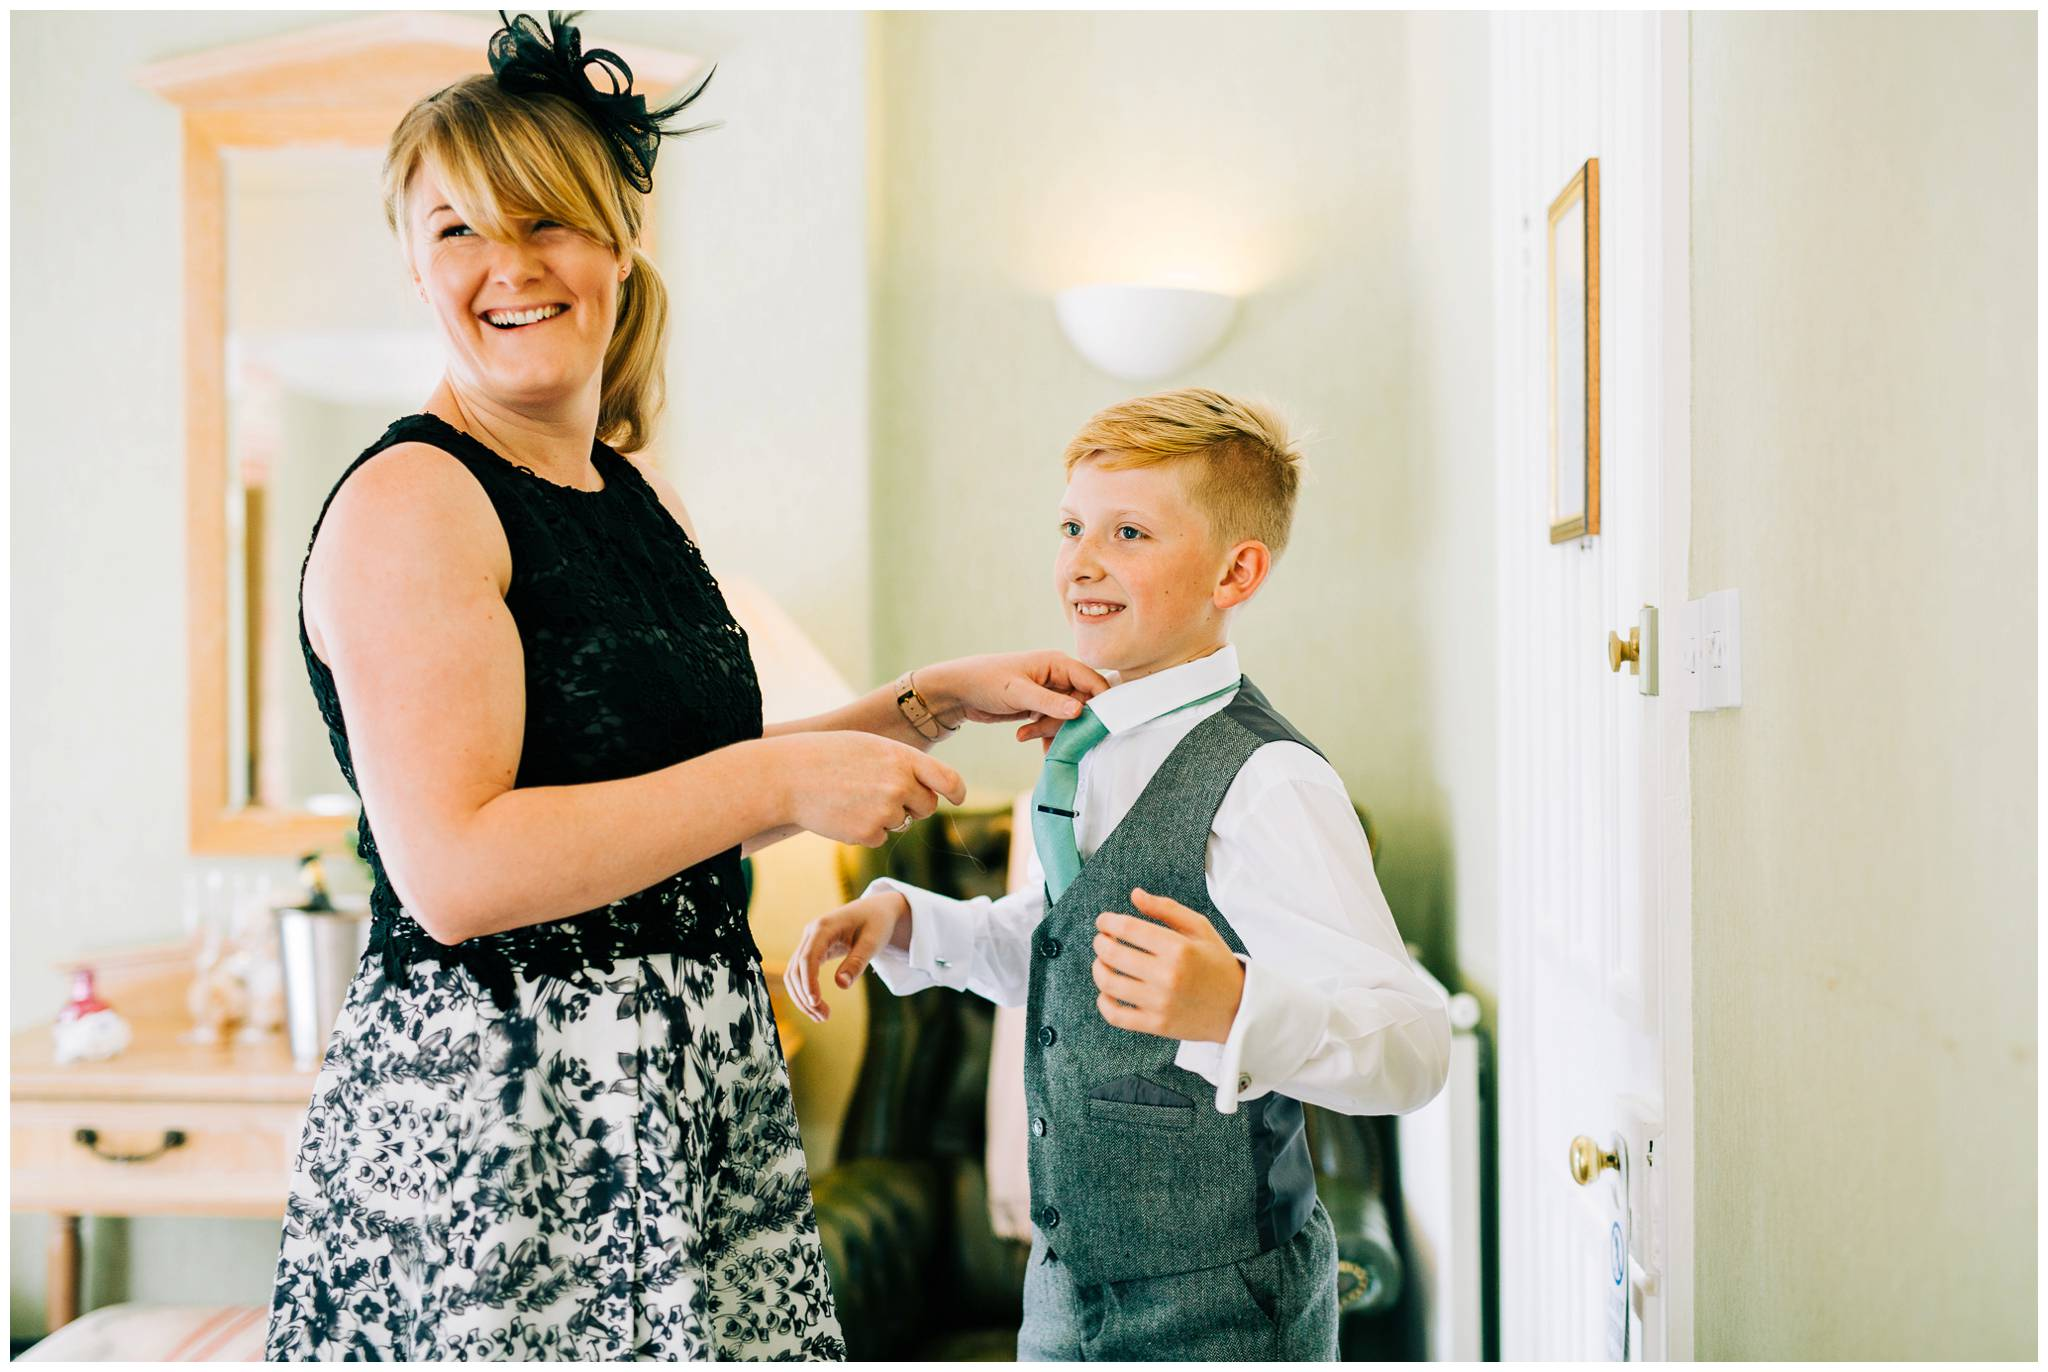 Natural wedding photography Manchester - Clare Robinson Photography_0165.jpg